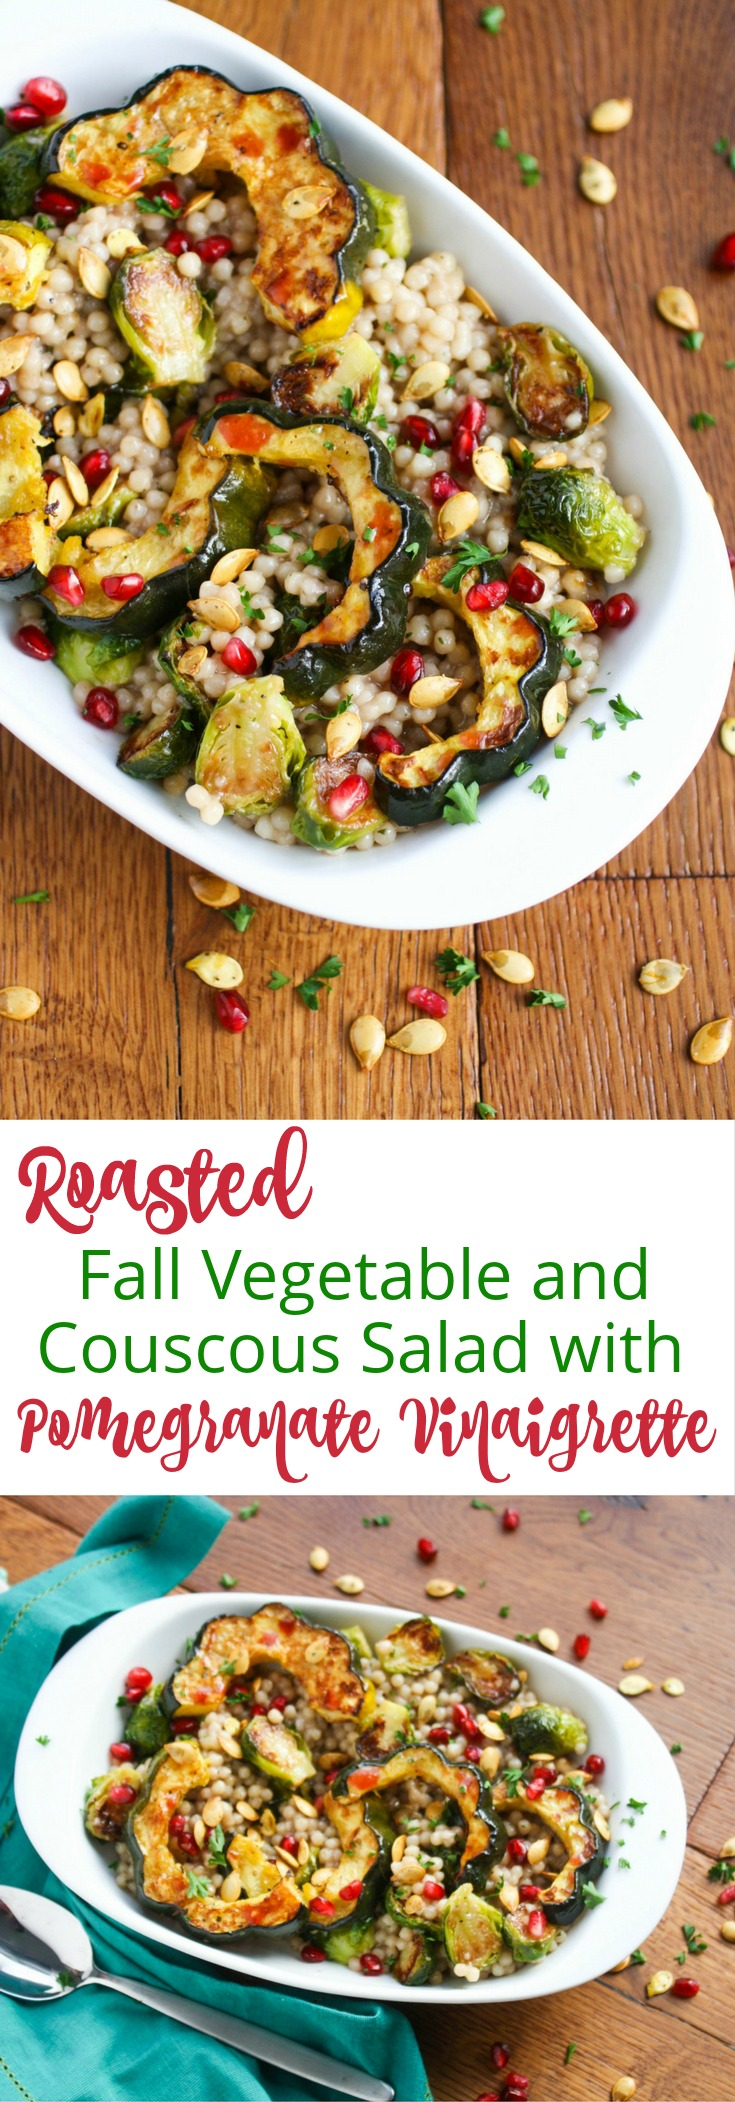 Roasted Fall Vegetable and Couscous Salad with Pomegranate Vinaigrette is a tasty and seasonal side. You'll love this side dish for a seasonal treat.